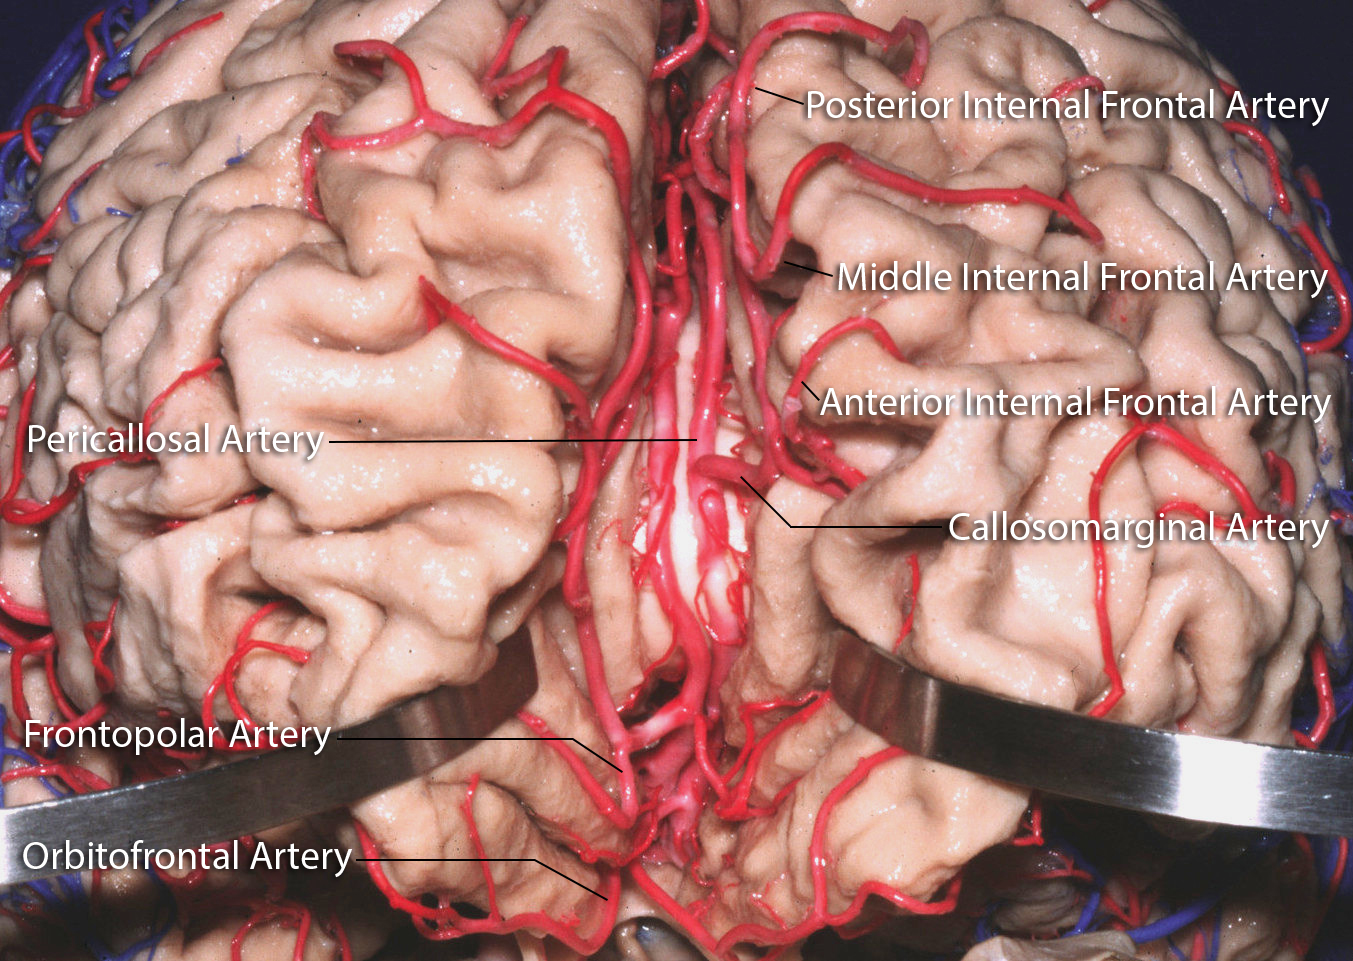 Figure 2: The ACA branches supply most of the medial frontal AVMs. The initial interhemispheric dissection allows timely control of the dominant feeding vessels to these AVMs (photo courtesy of AL Rhoton, Jr).